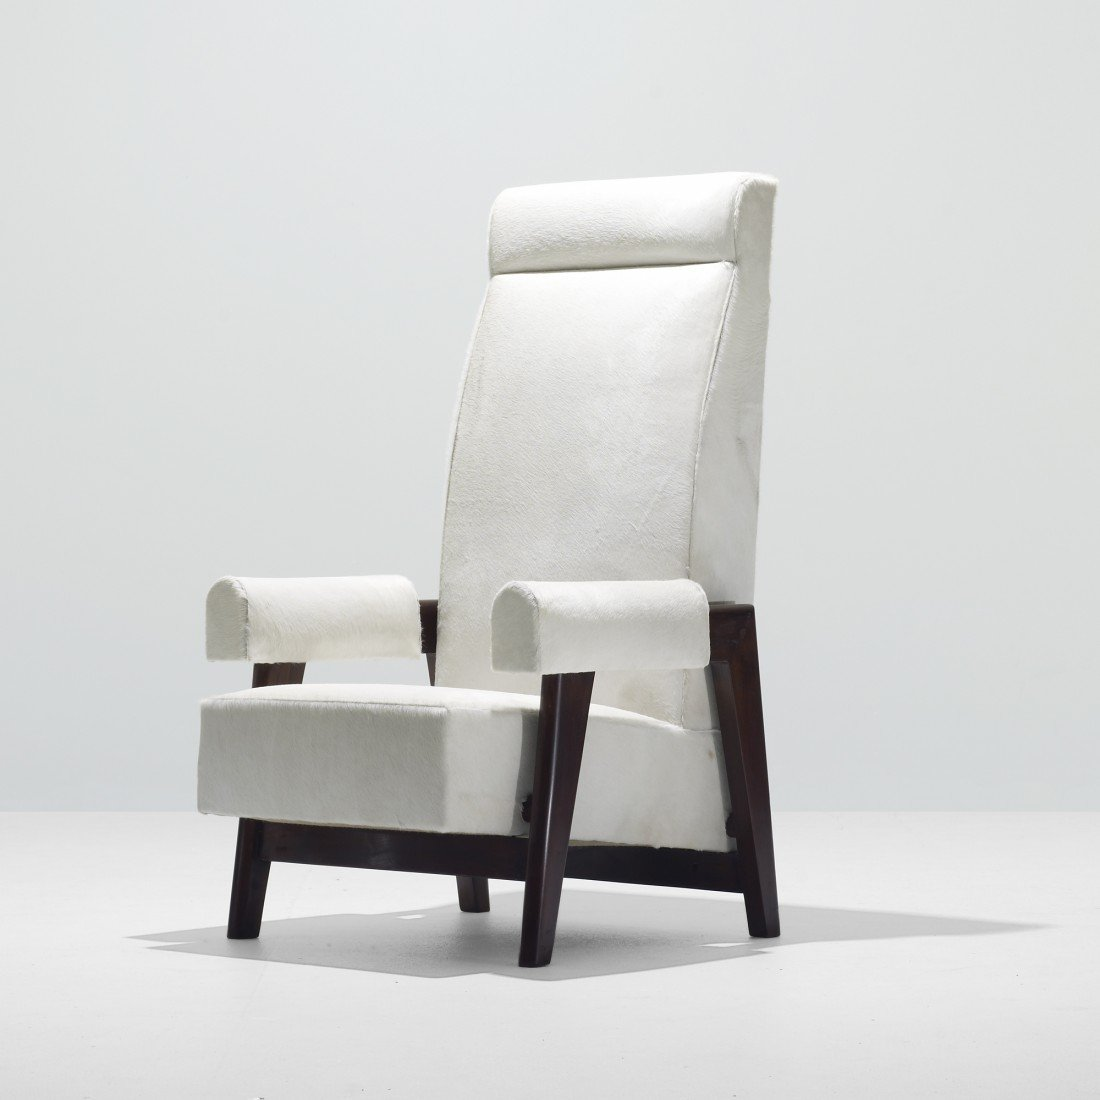 121: Le Corbusier and Jeanneret President chair